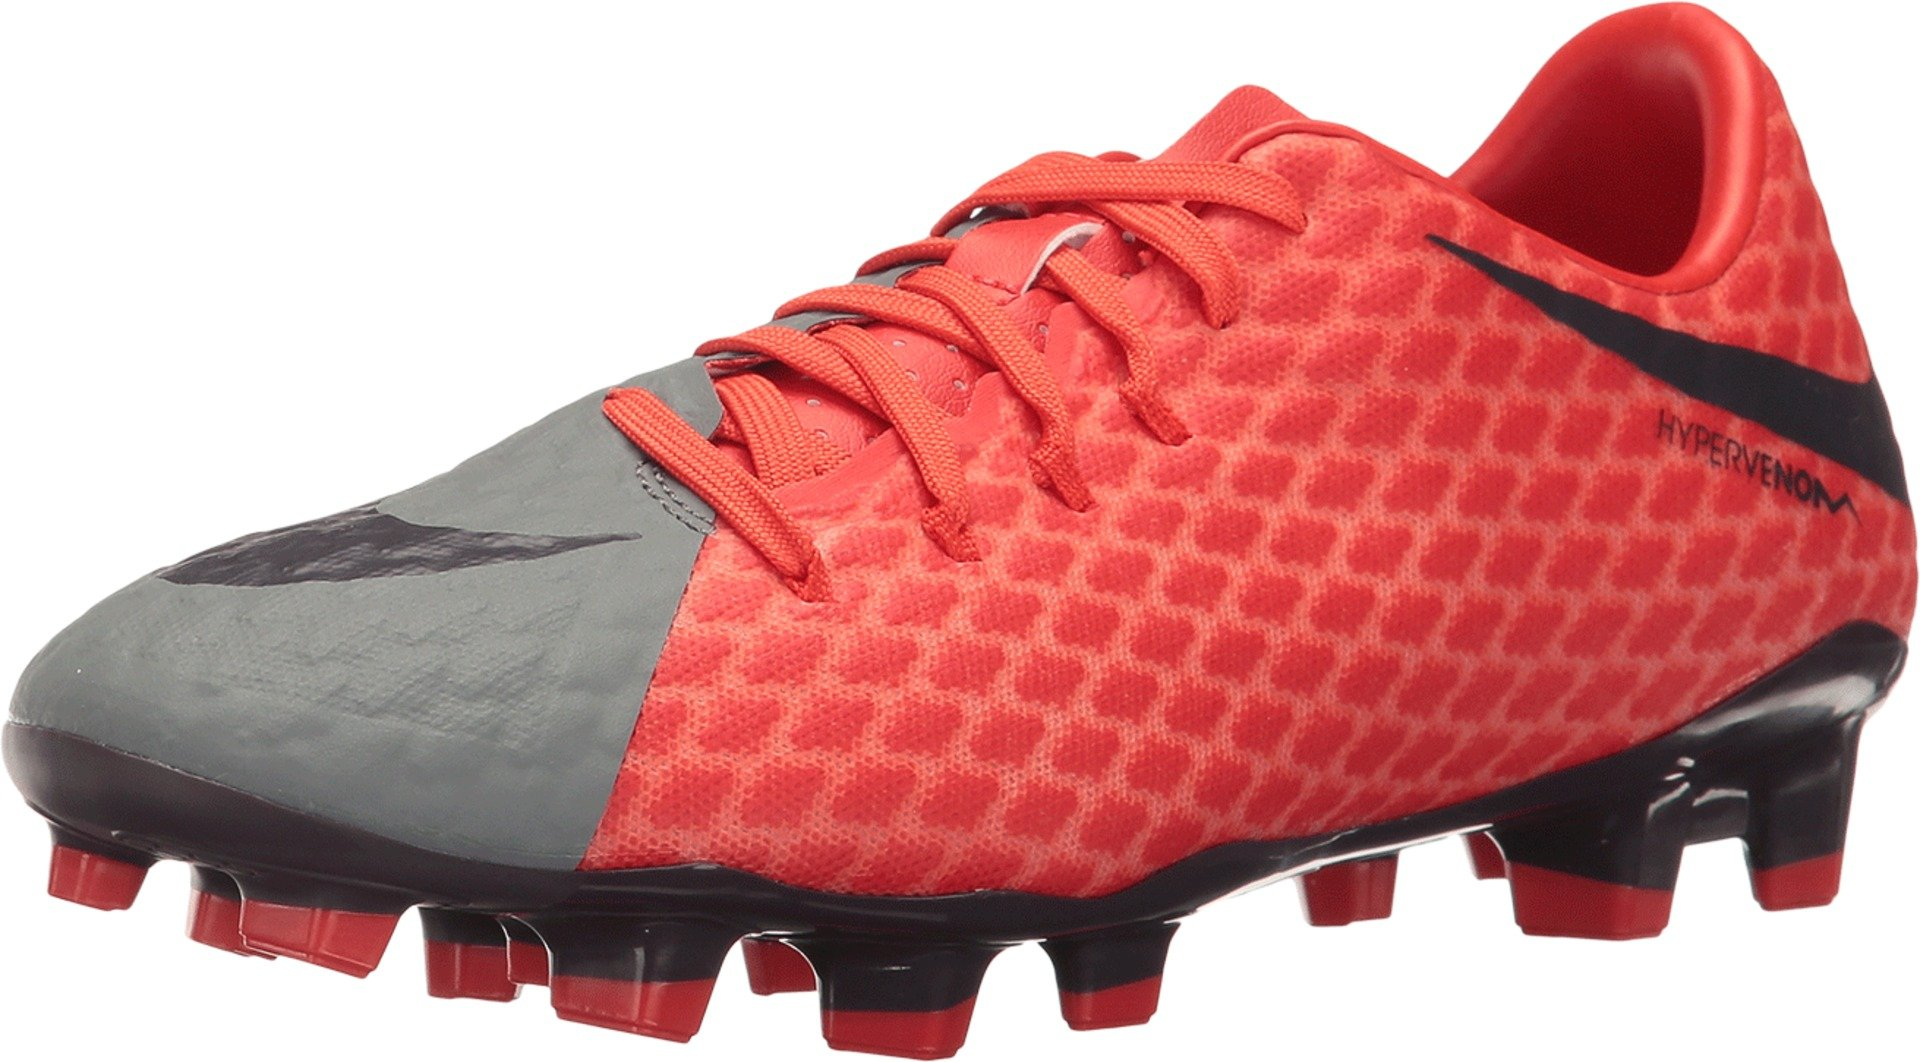 Nike New Women's Hypervenom Phelon II FG Soccer Cleat Grey/Orange 6.5 by Nike